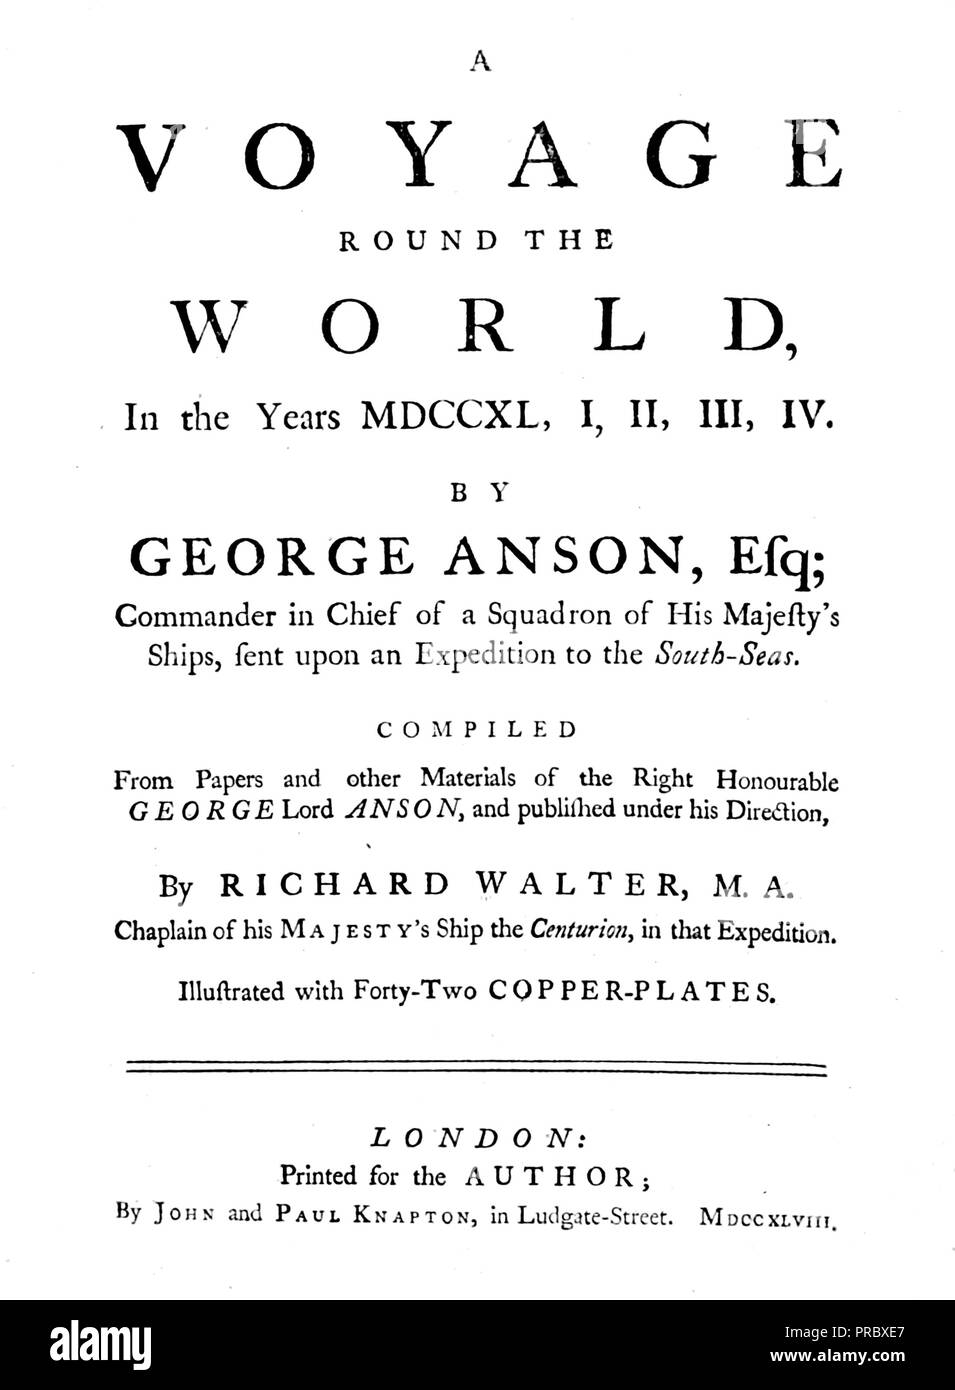 GEORGE ANSON, Ist Baron Anson (1697-1762) Royal Navy officer who circumnavigated the world between 1740 and 1744 while Britain was at war with Spain. Title page of his 1748 book A Voyage Around the World. - Stock Image